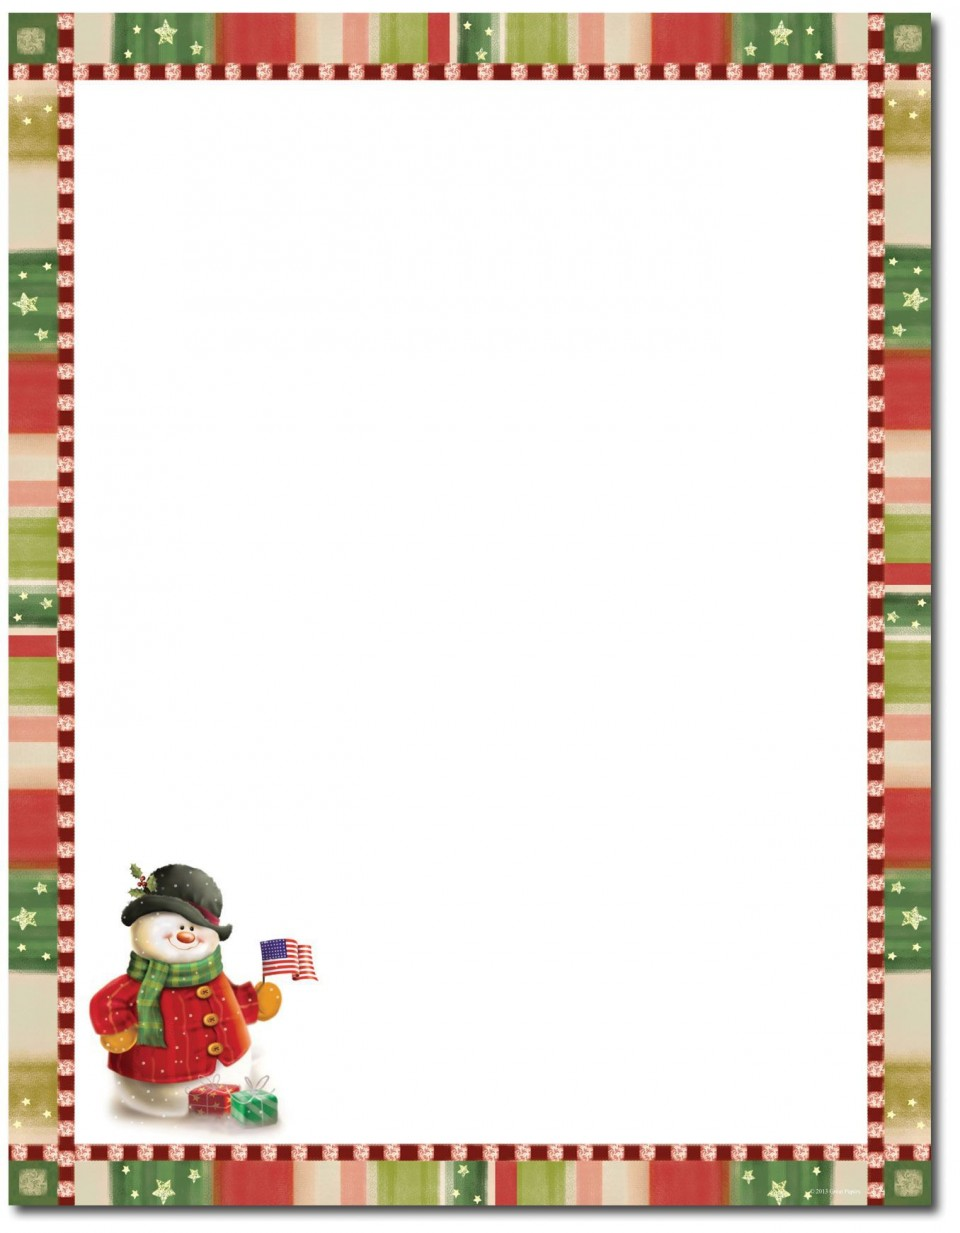 000 Awesome Free Holiday Stationery Template For Word Inspiration 960